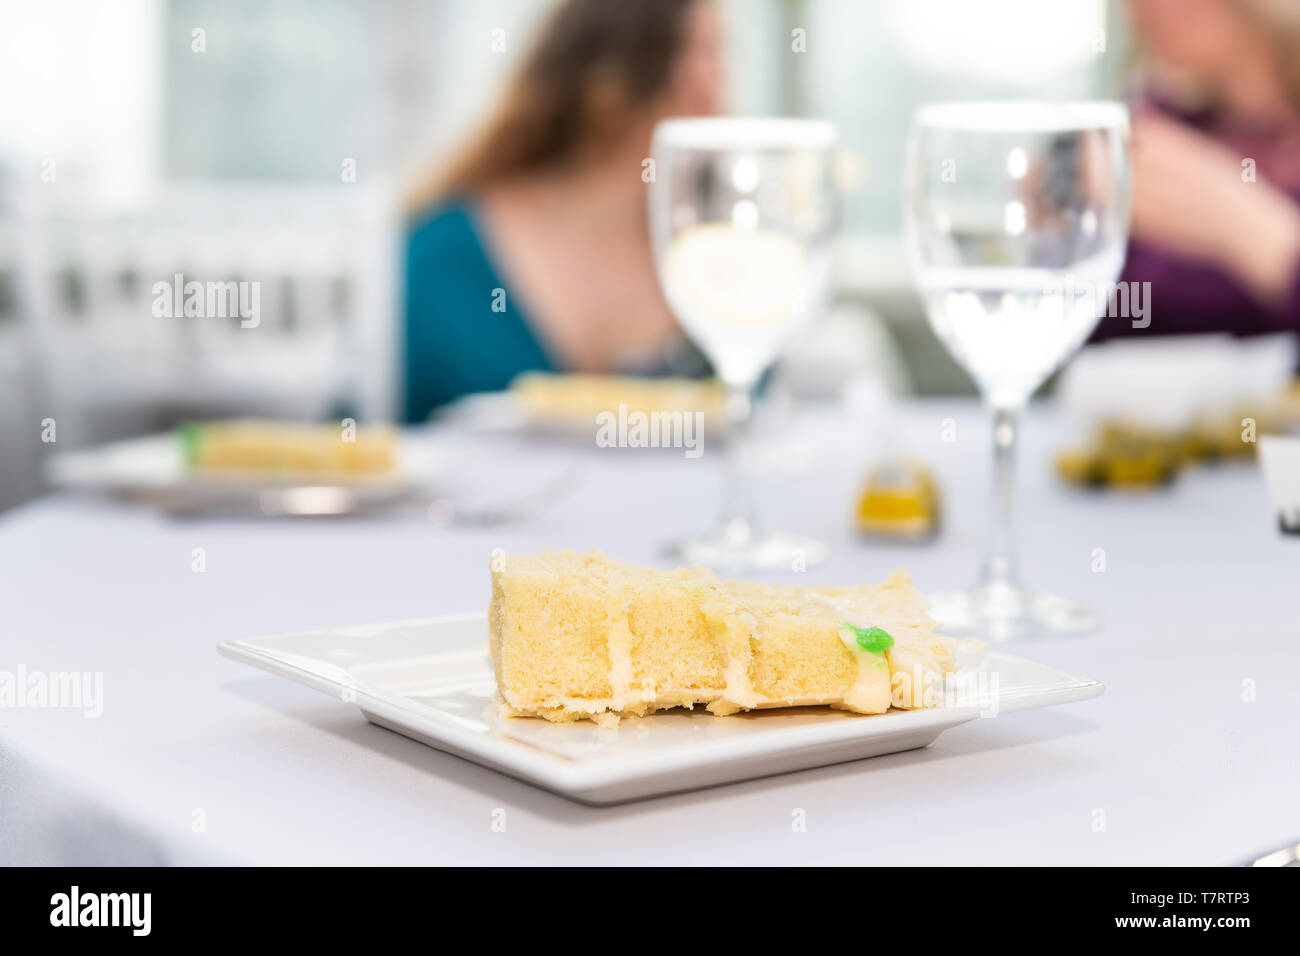 Table with glasses of water in restaurant or wedding reception white table tablecloth plates with yellow cake slices and background of guests eating - Stock Image